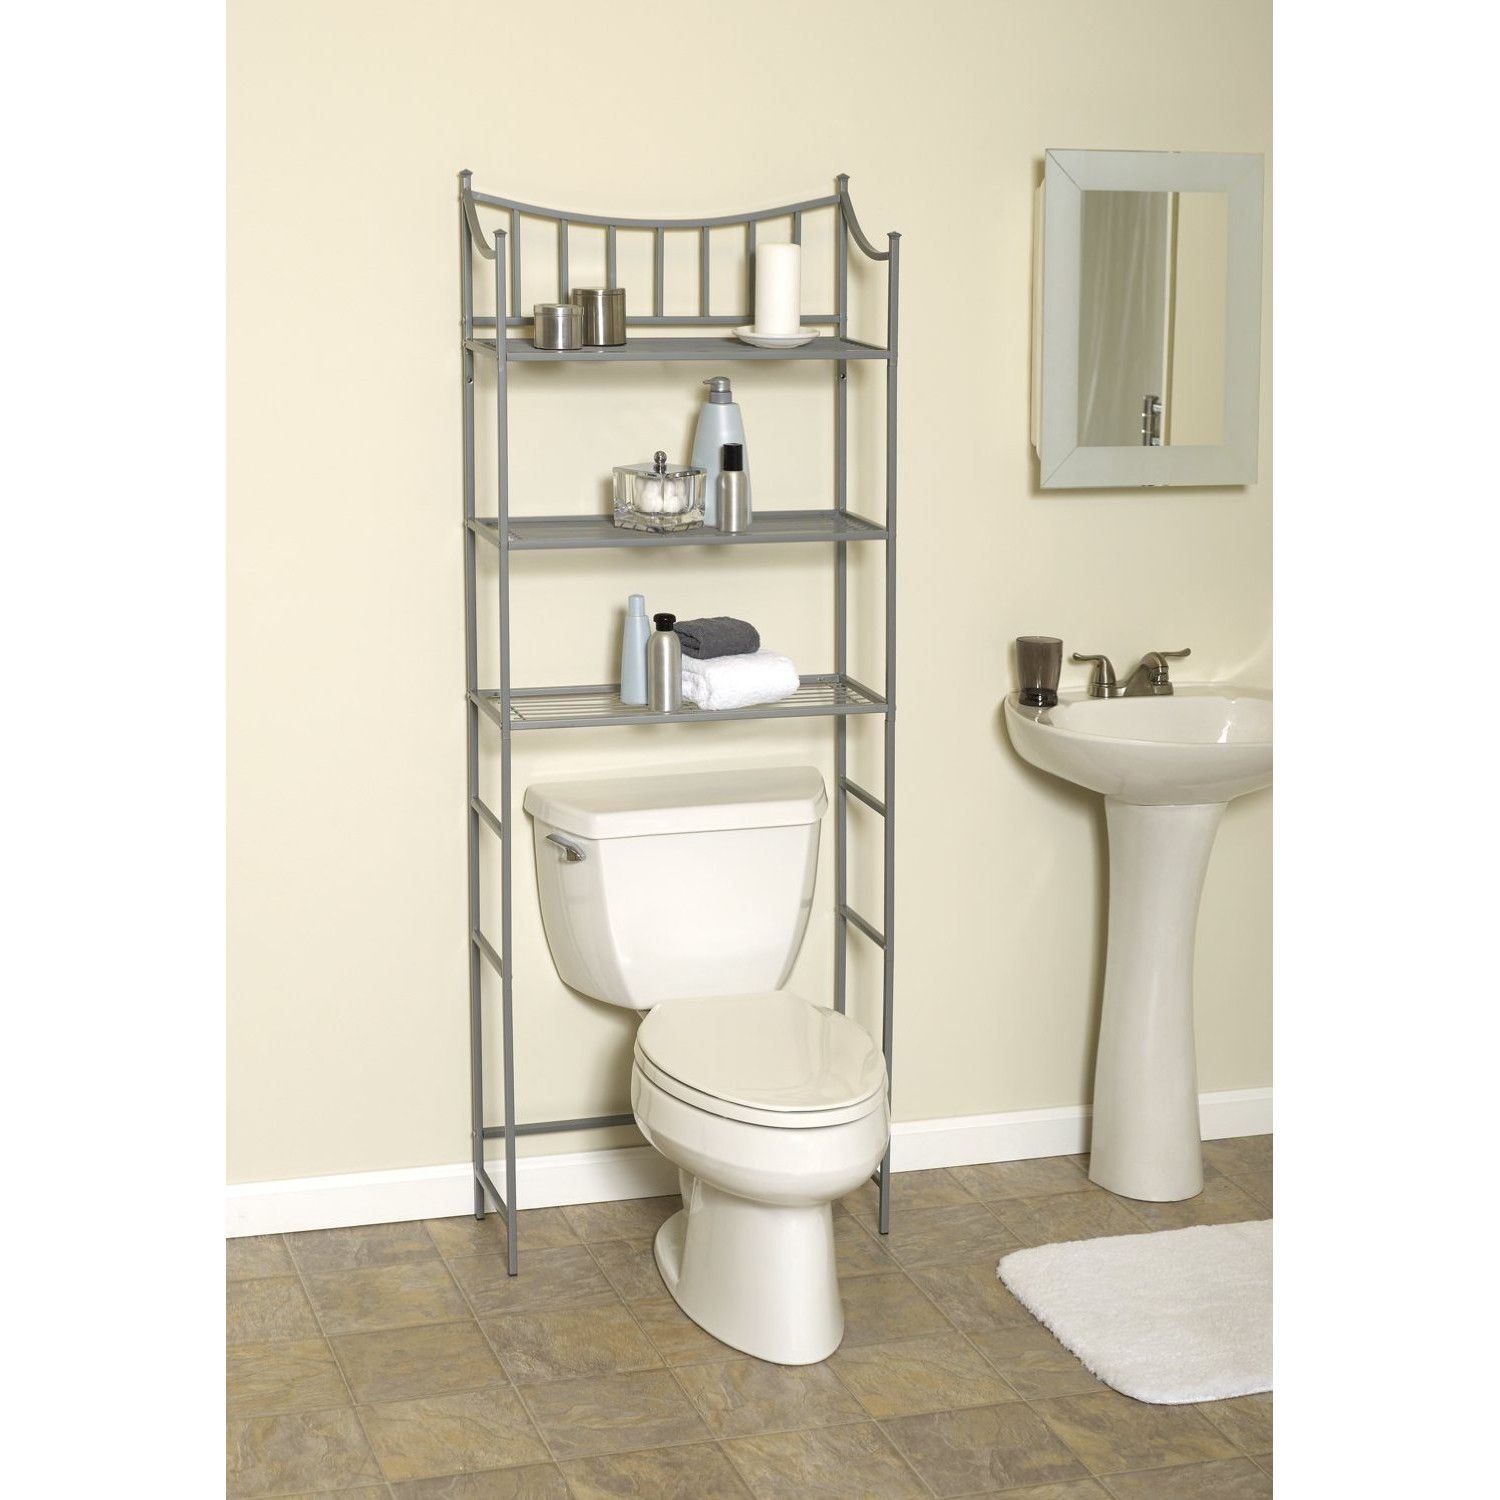 Shelves Over The Toilet As The Additional Storage For